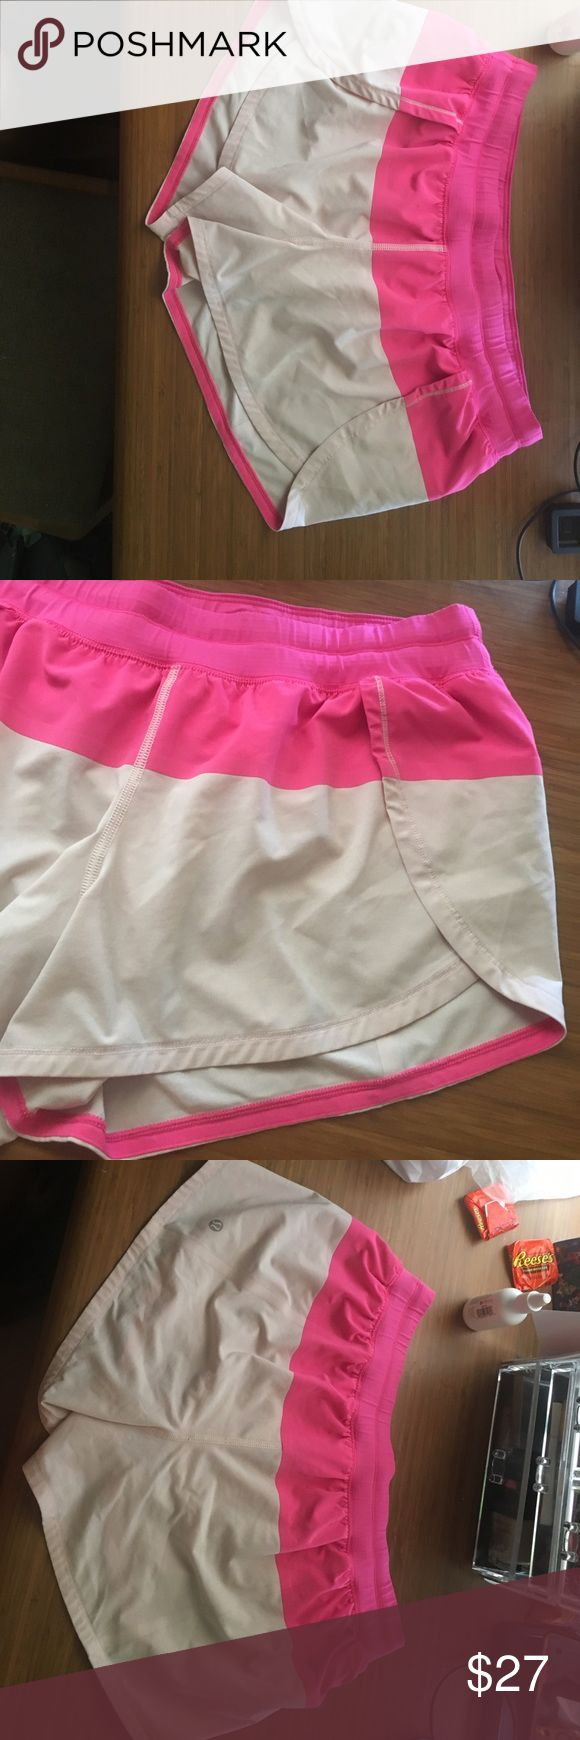 Lululemon pink shorts sz10 Hot pink and light pink lululemon shorts. Size 10 but no tag or dot. Barely worn, cute like open running short type in the front with built in undies. Only worn like twice because they're too small on me. Perfect Lulu symbol on back bottom left lululemon athletica Shorts